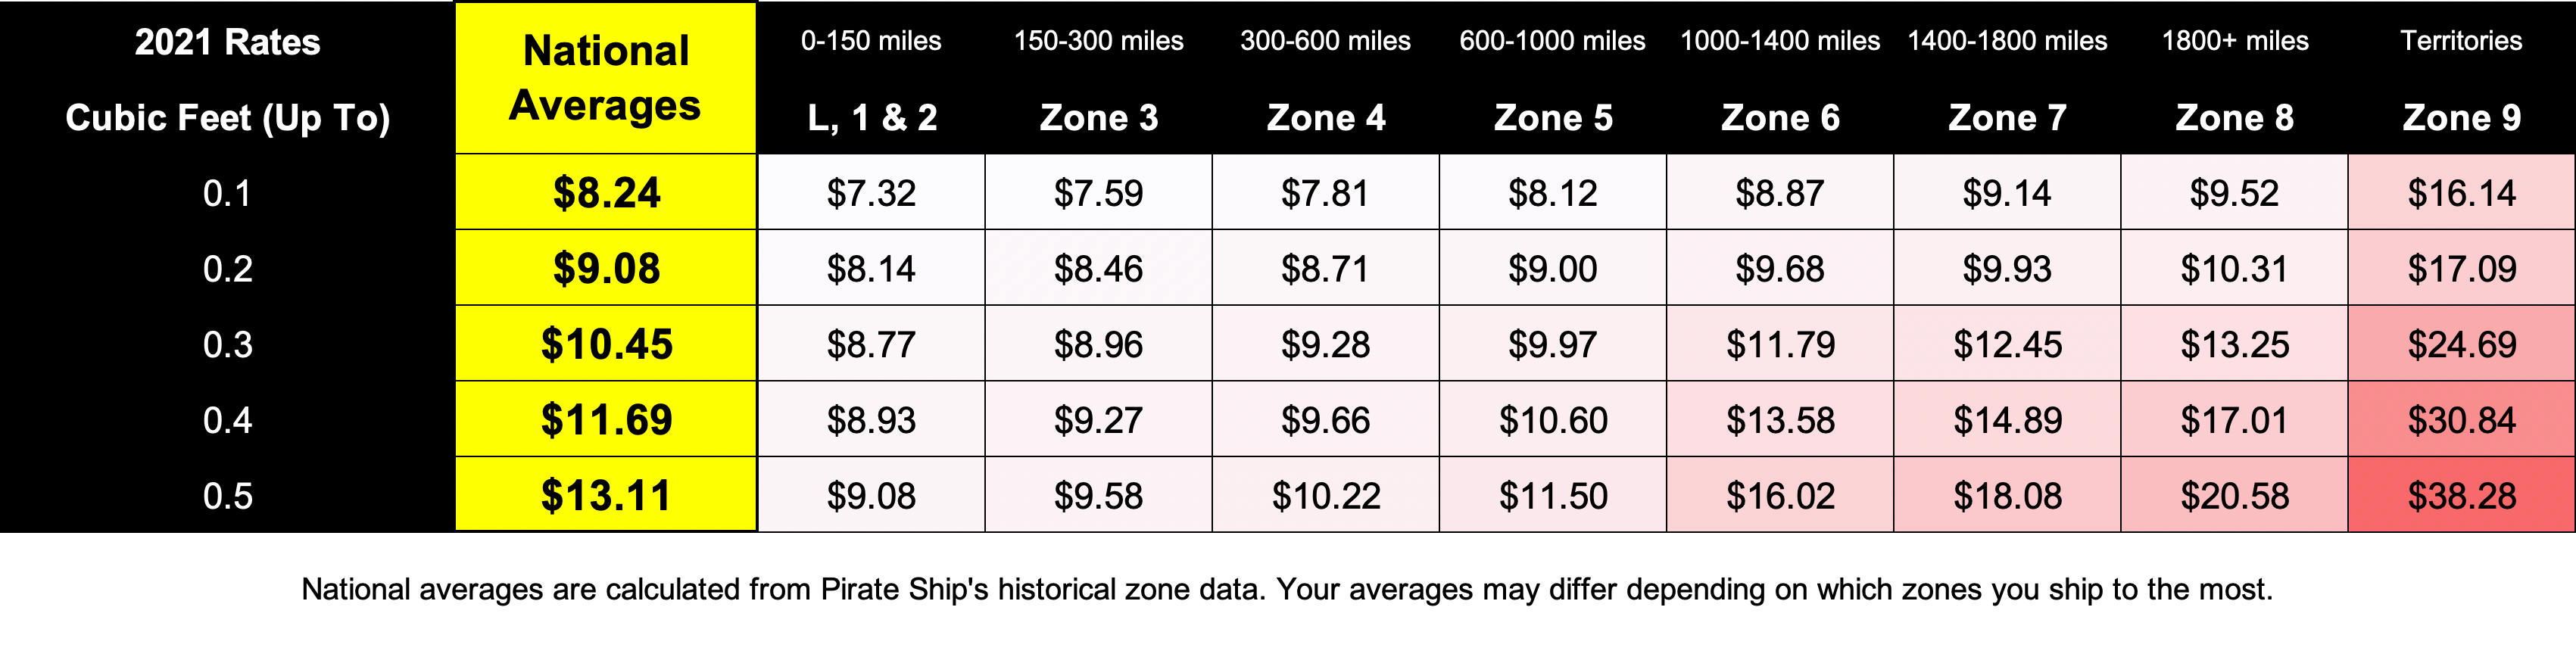 A chart showing the 2021 rates for Priority Mail Cubic